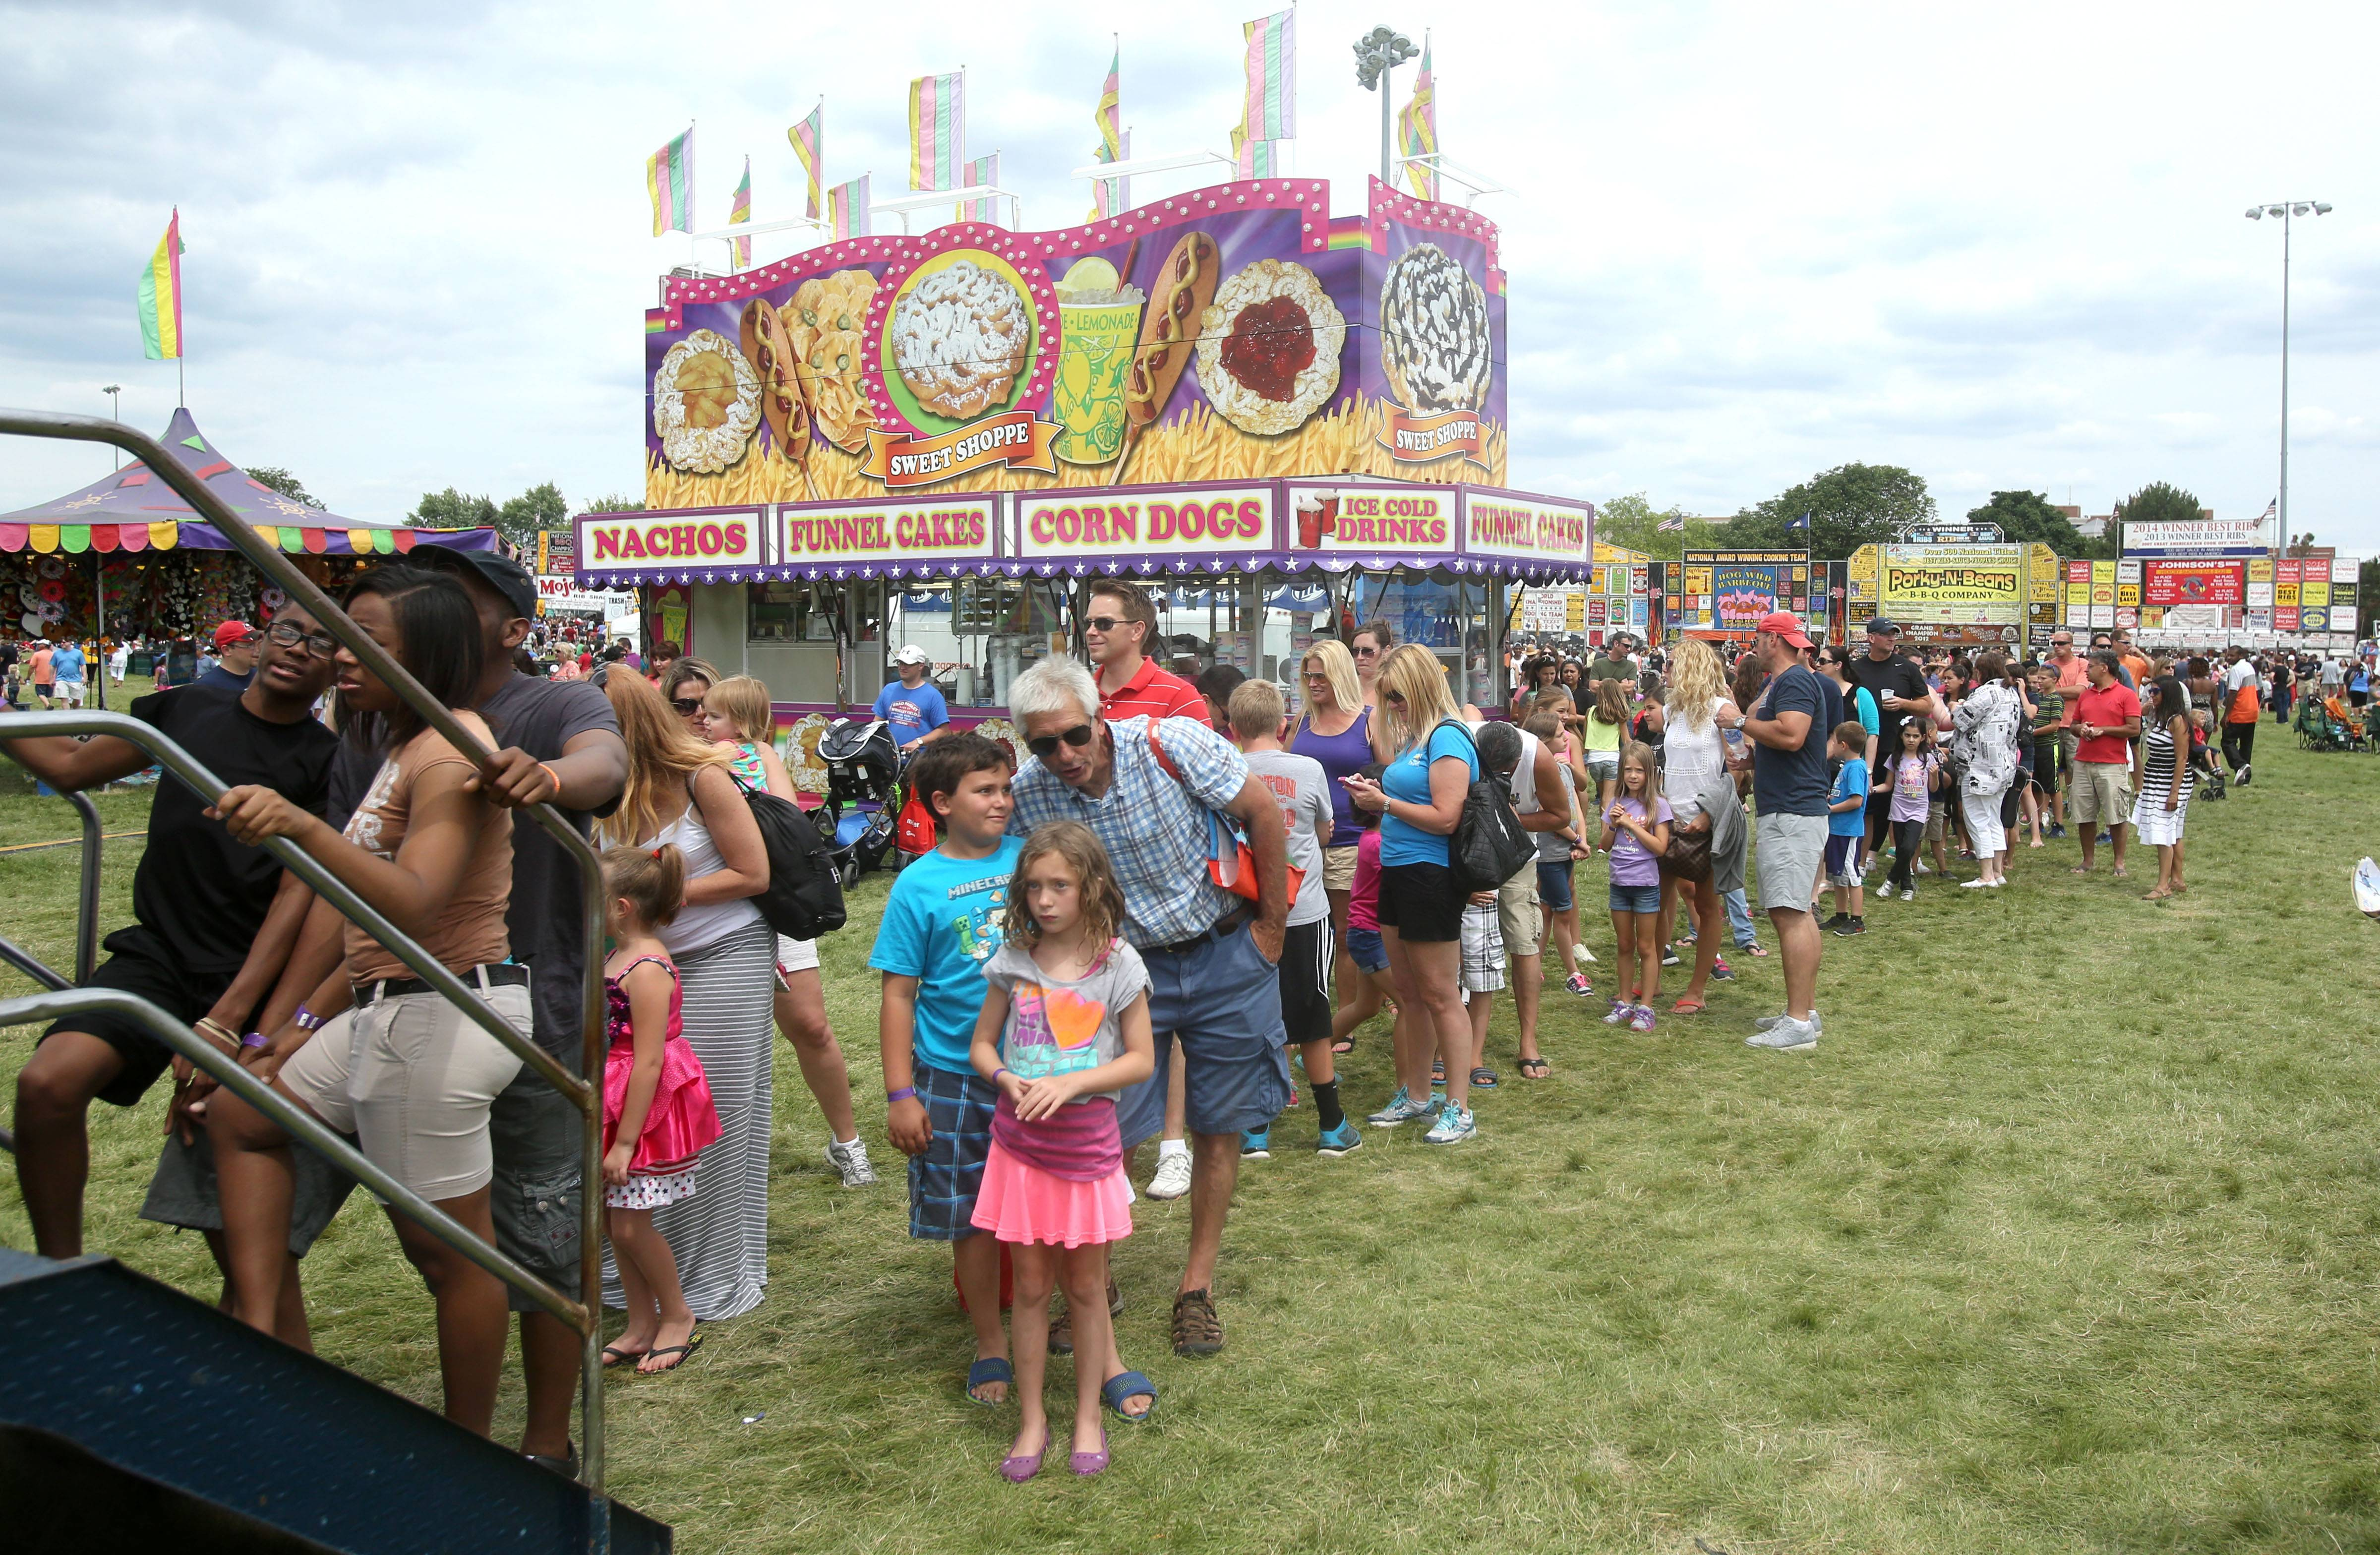 Long lines were worth the wait for many in the carnival area at the first Hispanic Day at Ribfest in Naperville.